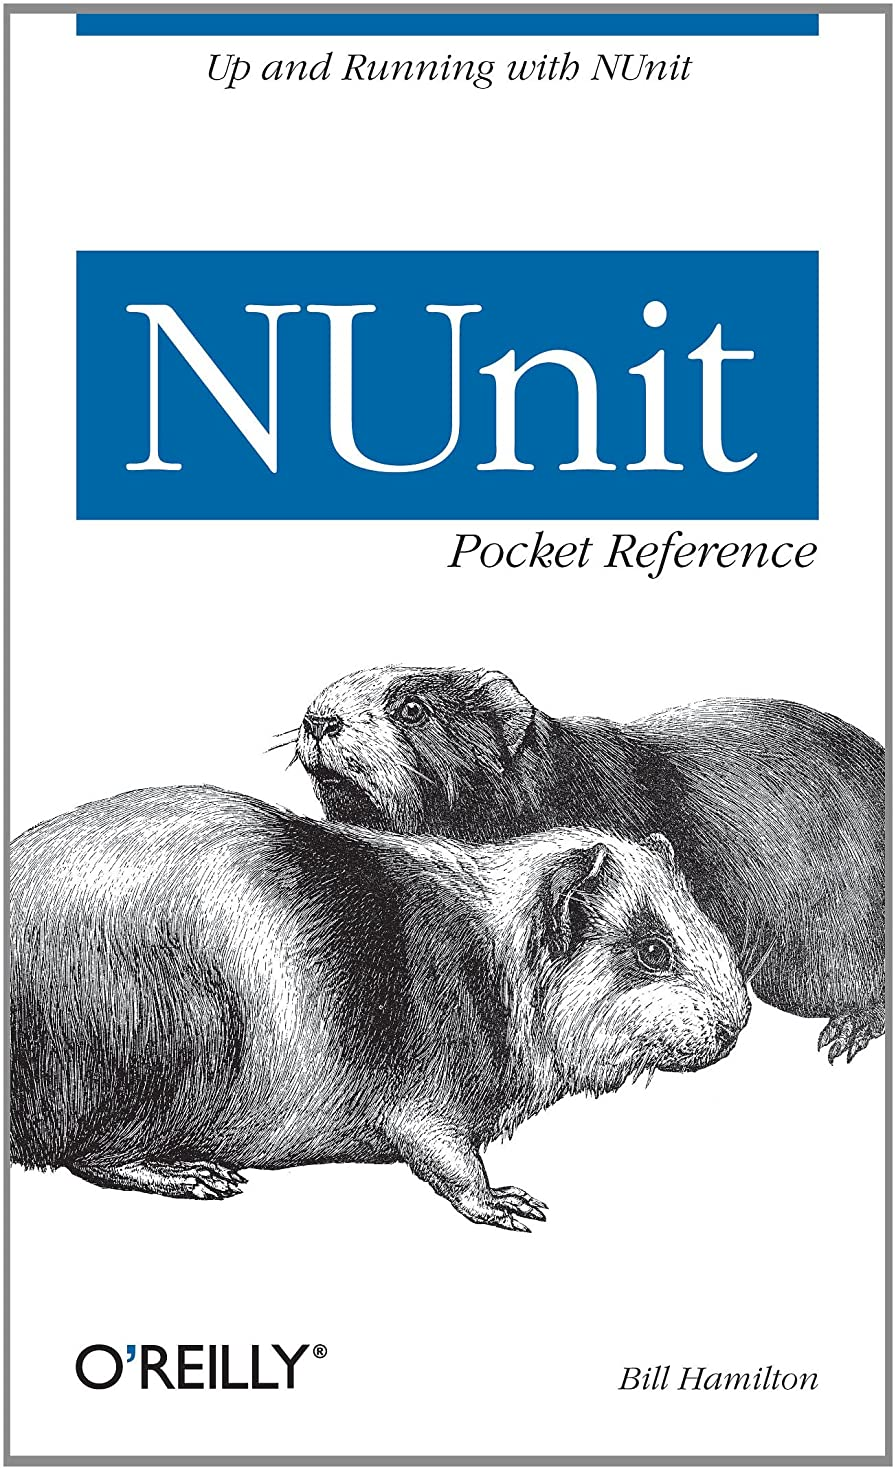 発掘エスカレーターアンビエントNUnit Pocket Reference: Up and Running with NUnit (Pocket Reference (O'Reilly)) (English Edition)